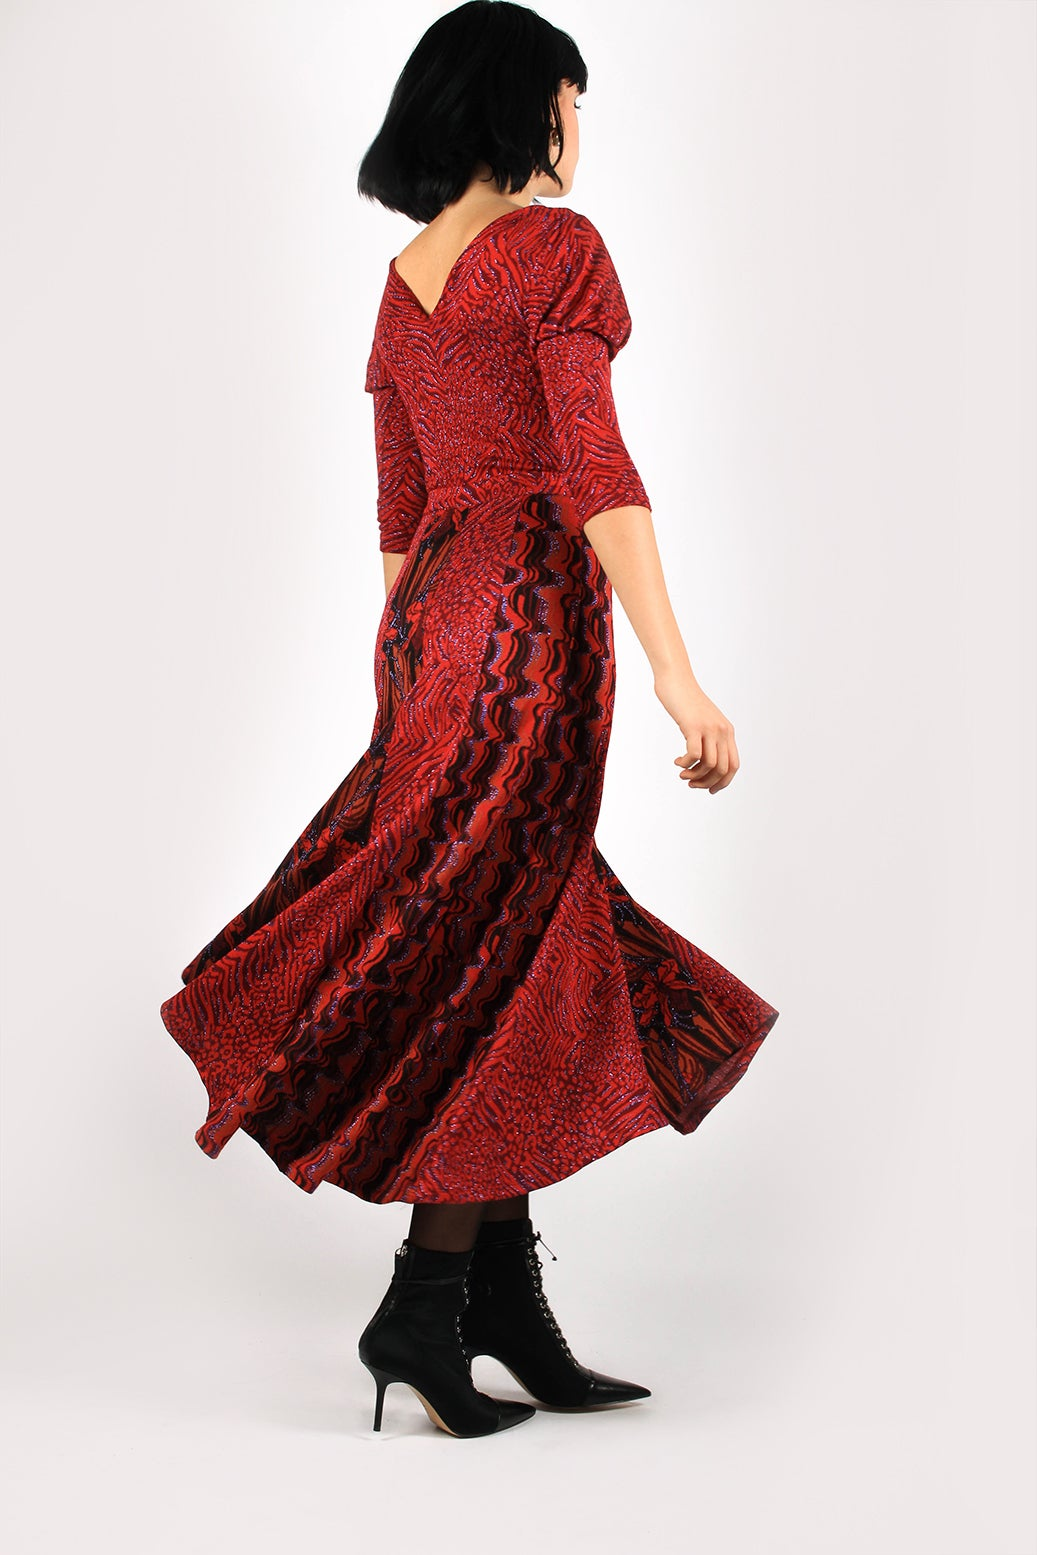 Image of GONNA GIOIA ROSSO €221 - 50%